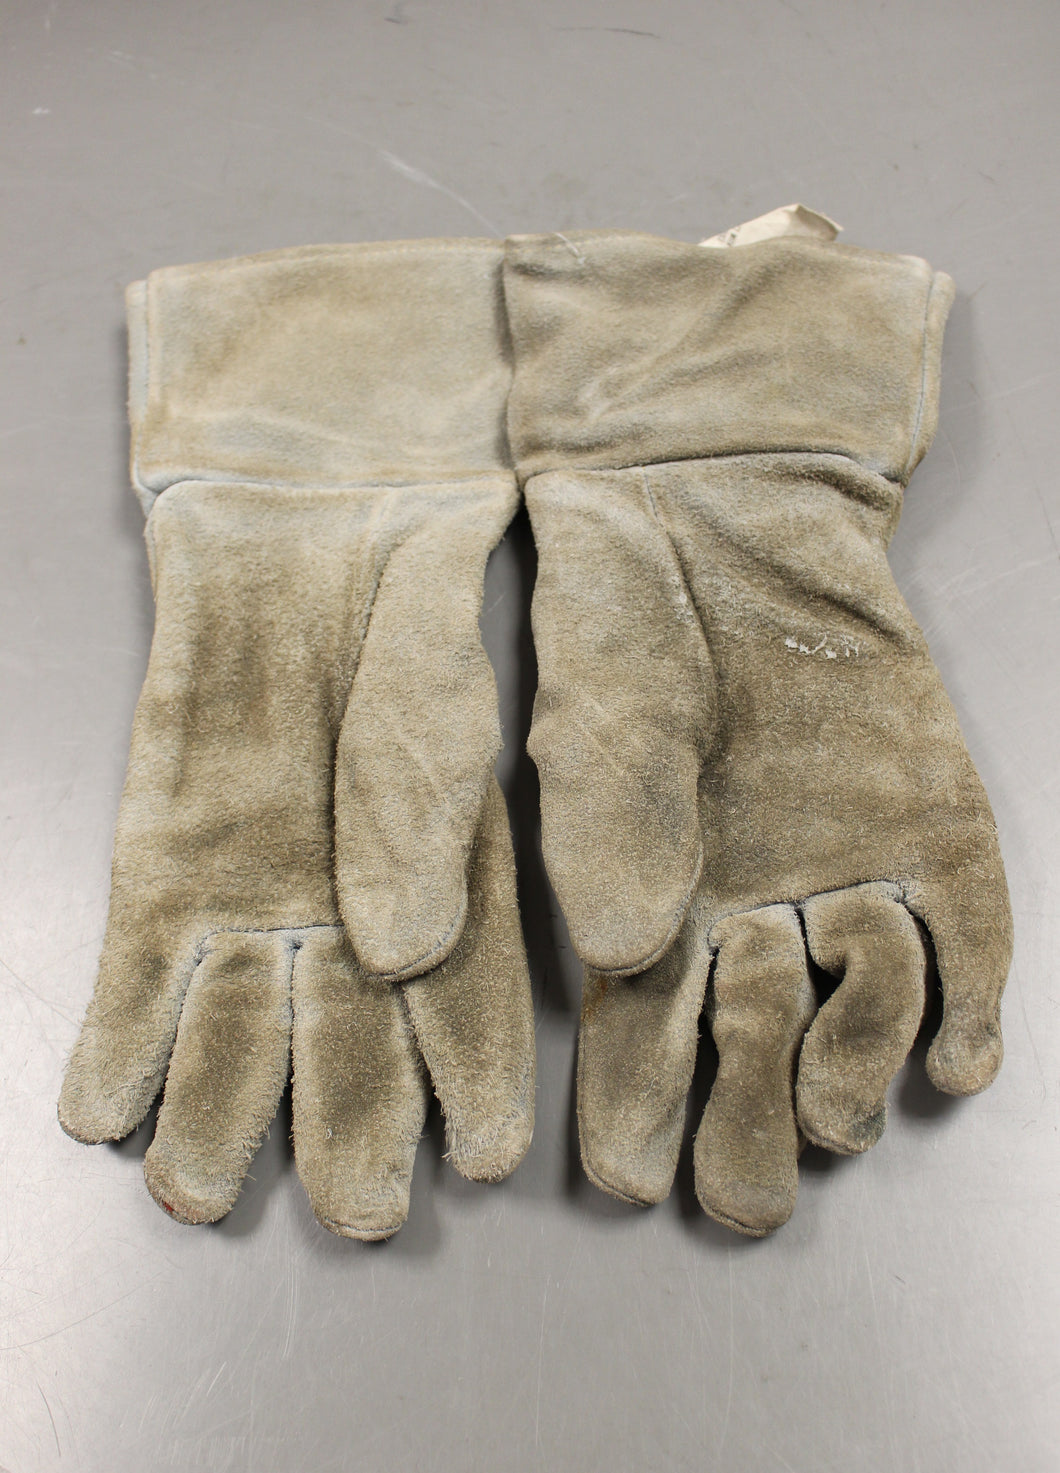 Firemen VII Gloves, Size: Large